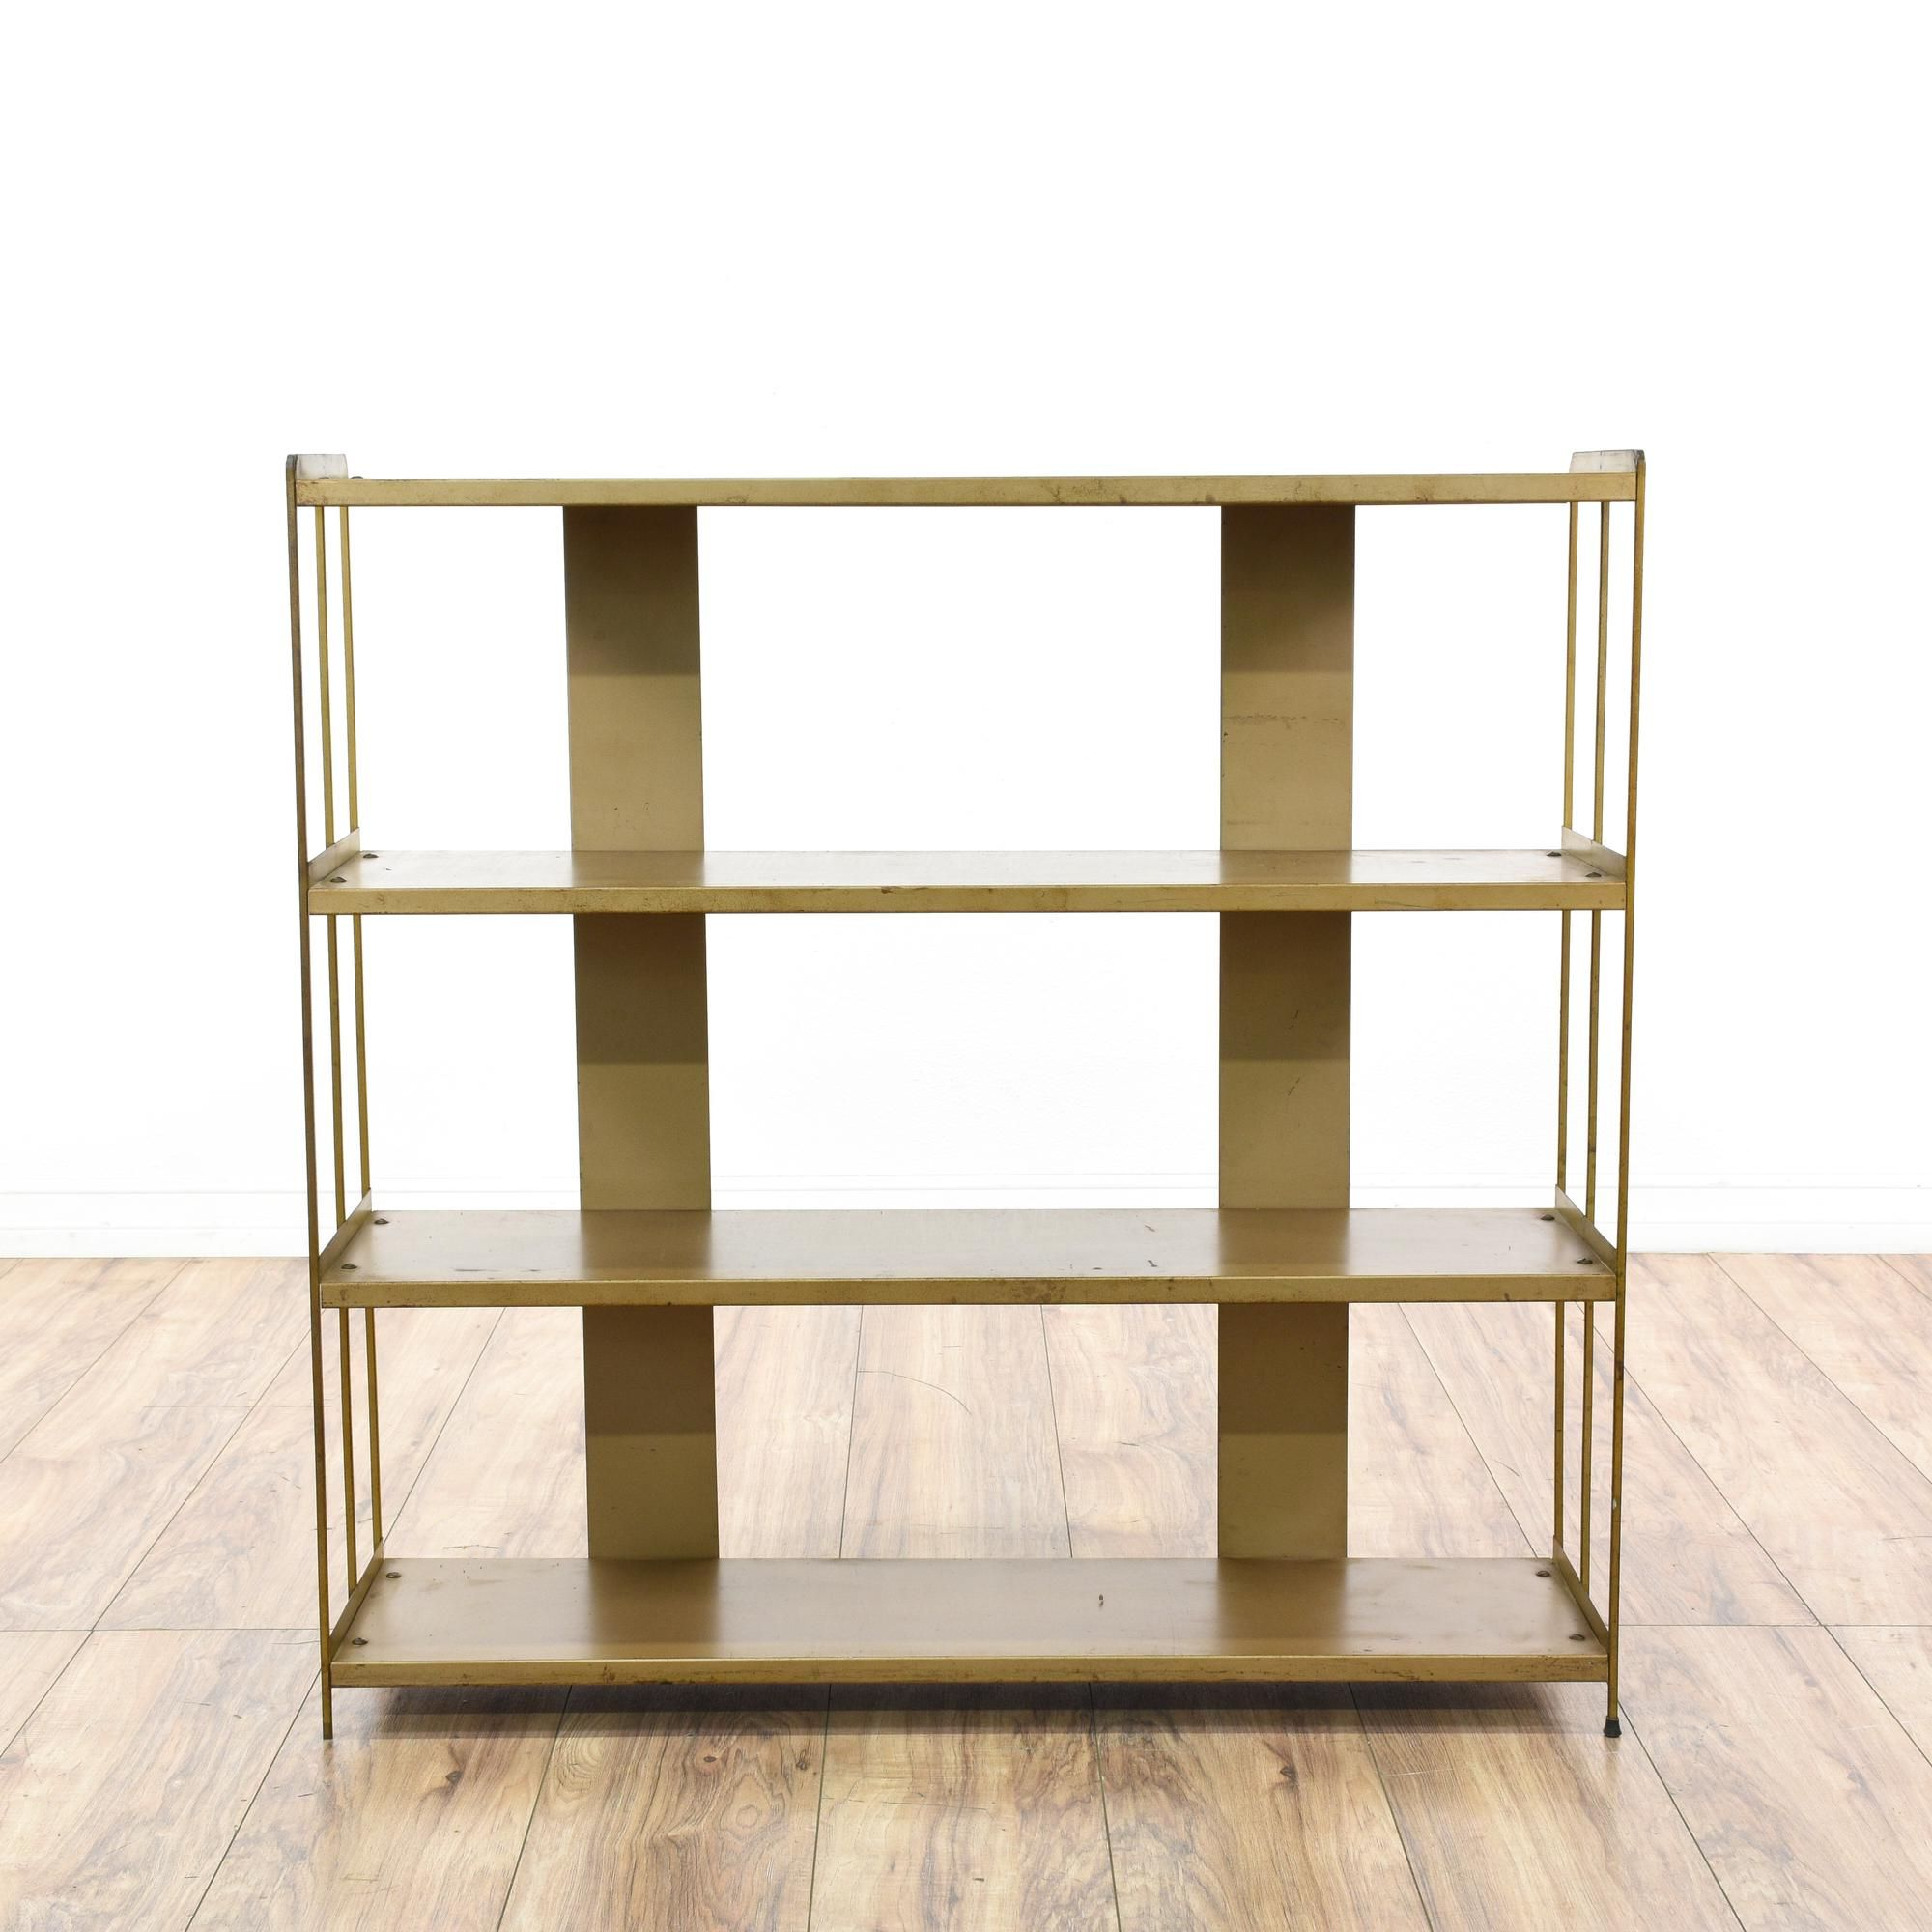 This mid century modern bookshelf is featured in a durable metal